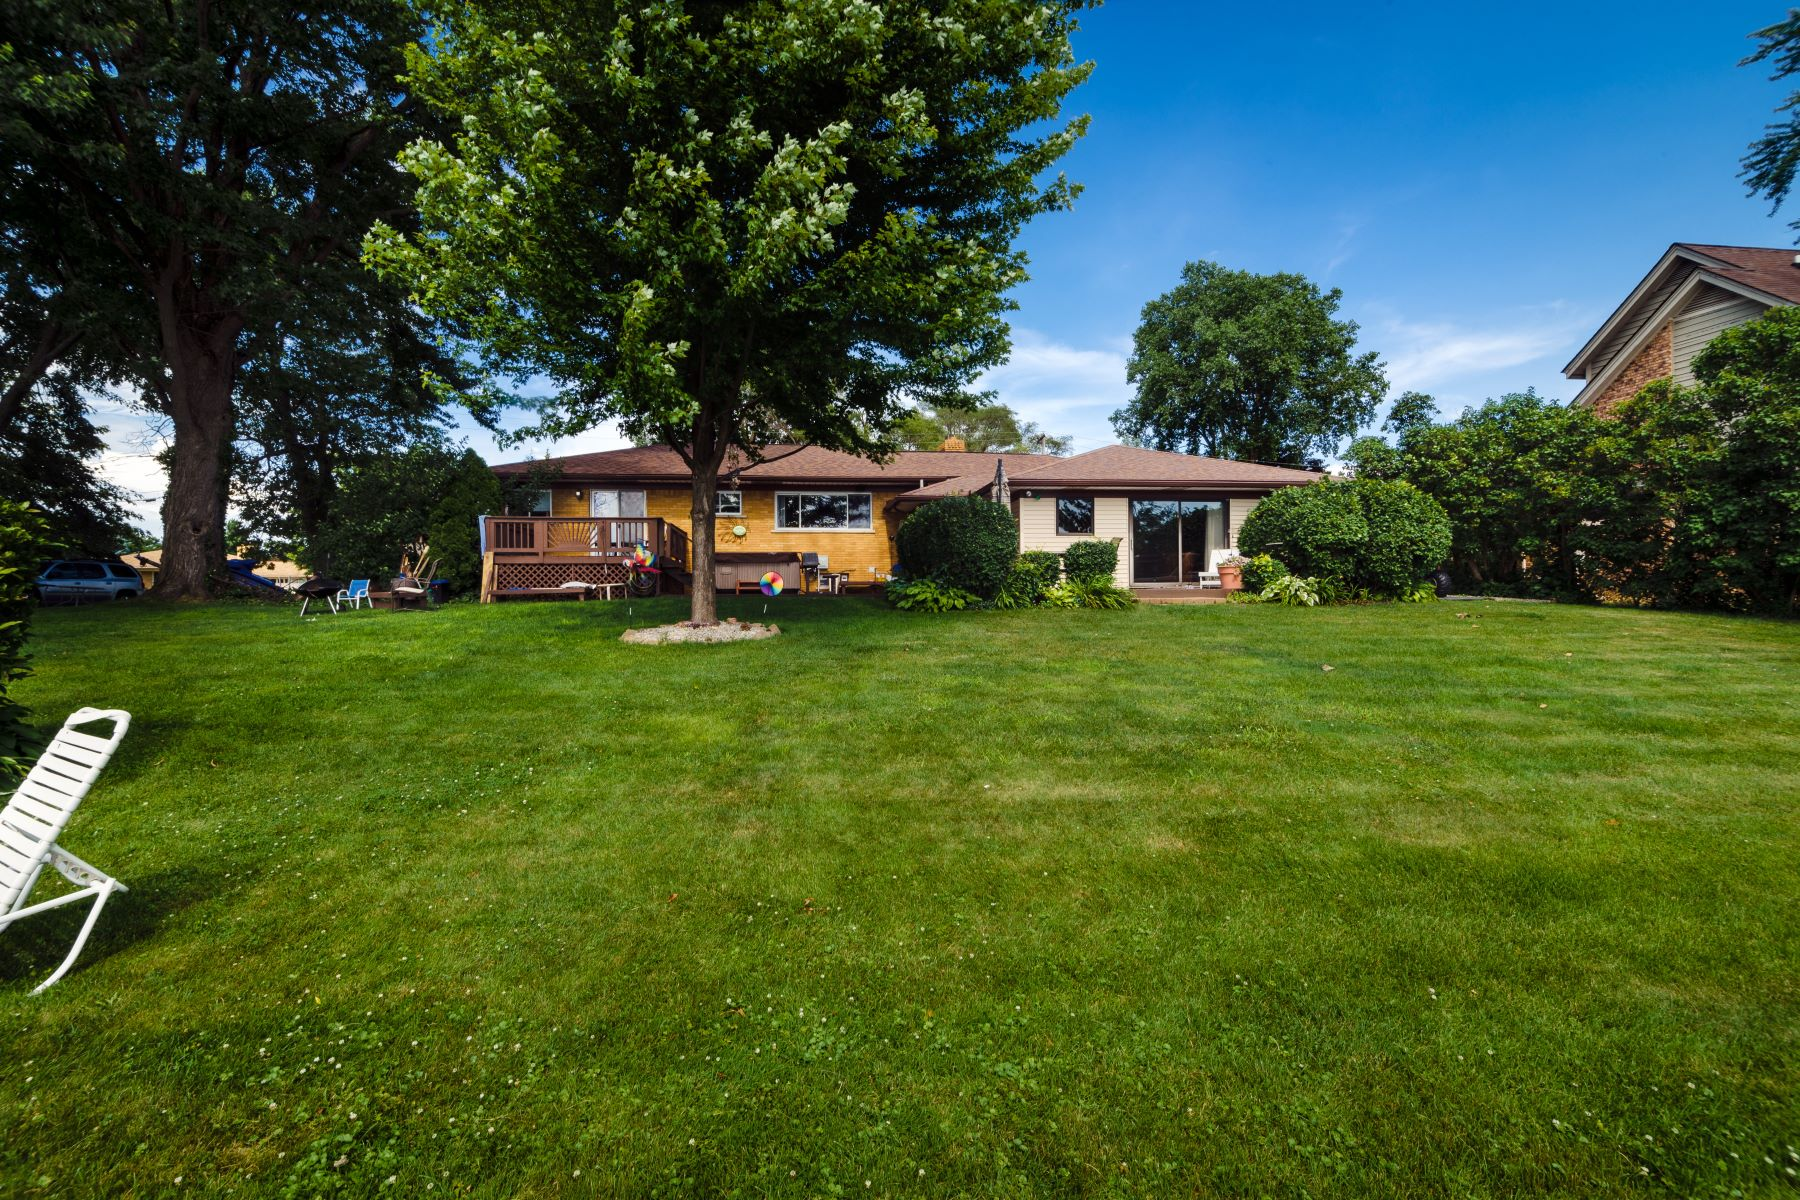 Single Family Homes for Active at Waterford 116 Edgelake Drive Waterford, Michigan 48327 United States